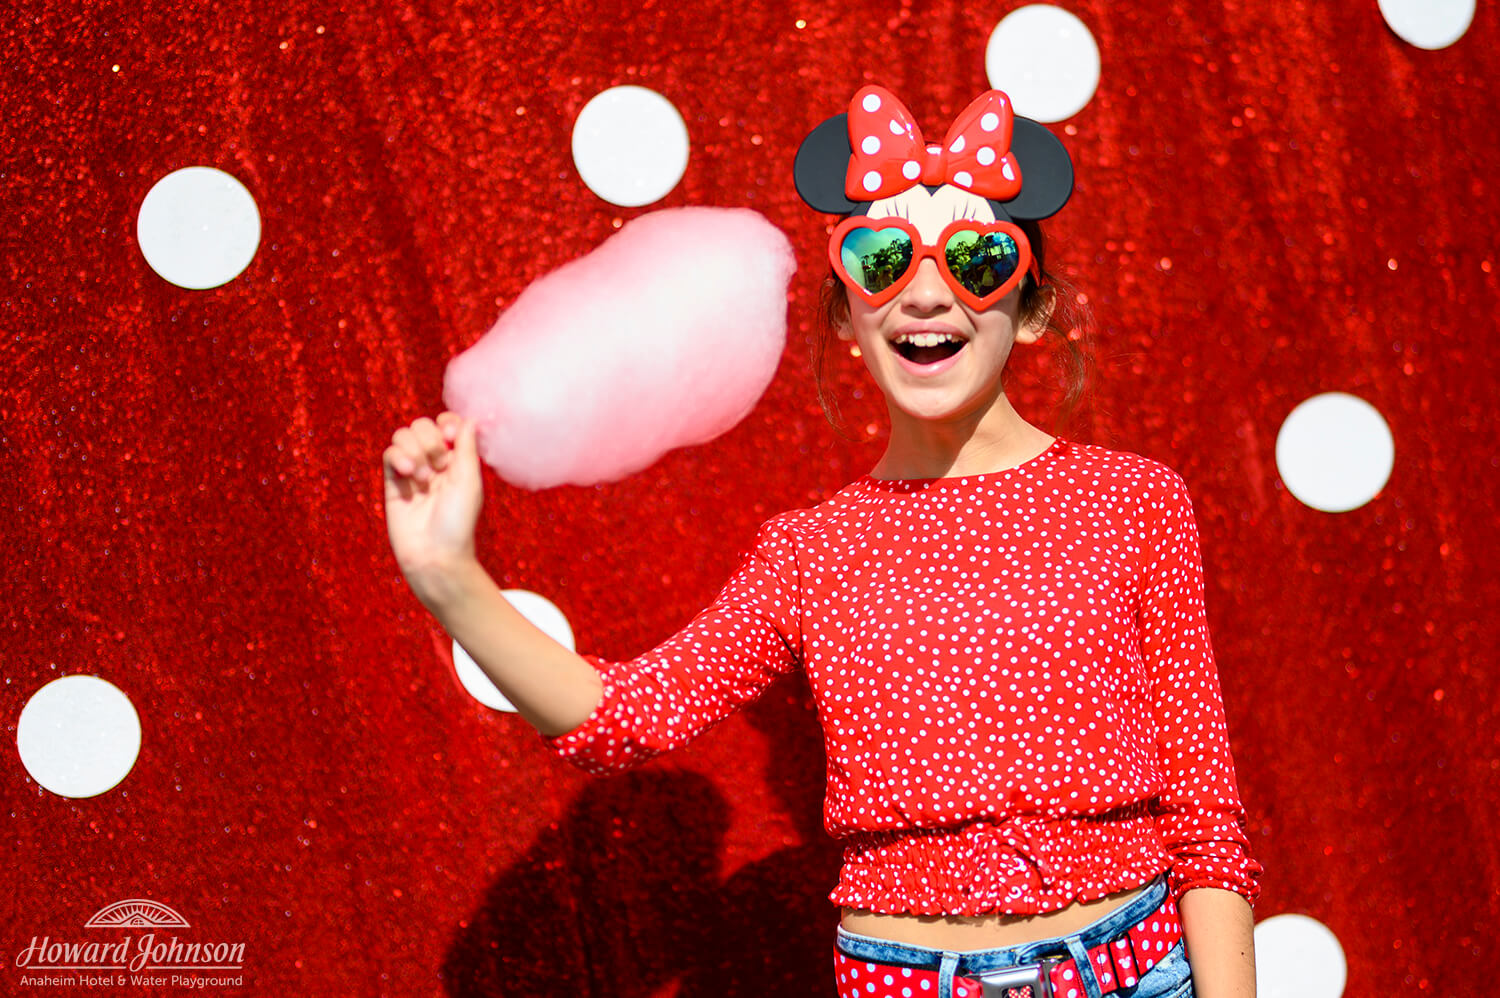 a young girl poses in Disney sunglasses and a polka dot shirt in front of a polka dot picture background with pink cotton candy in her hand